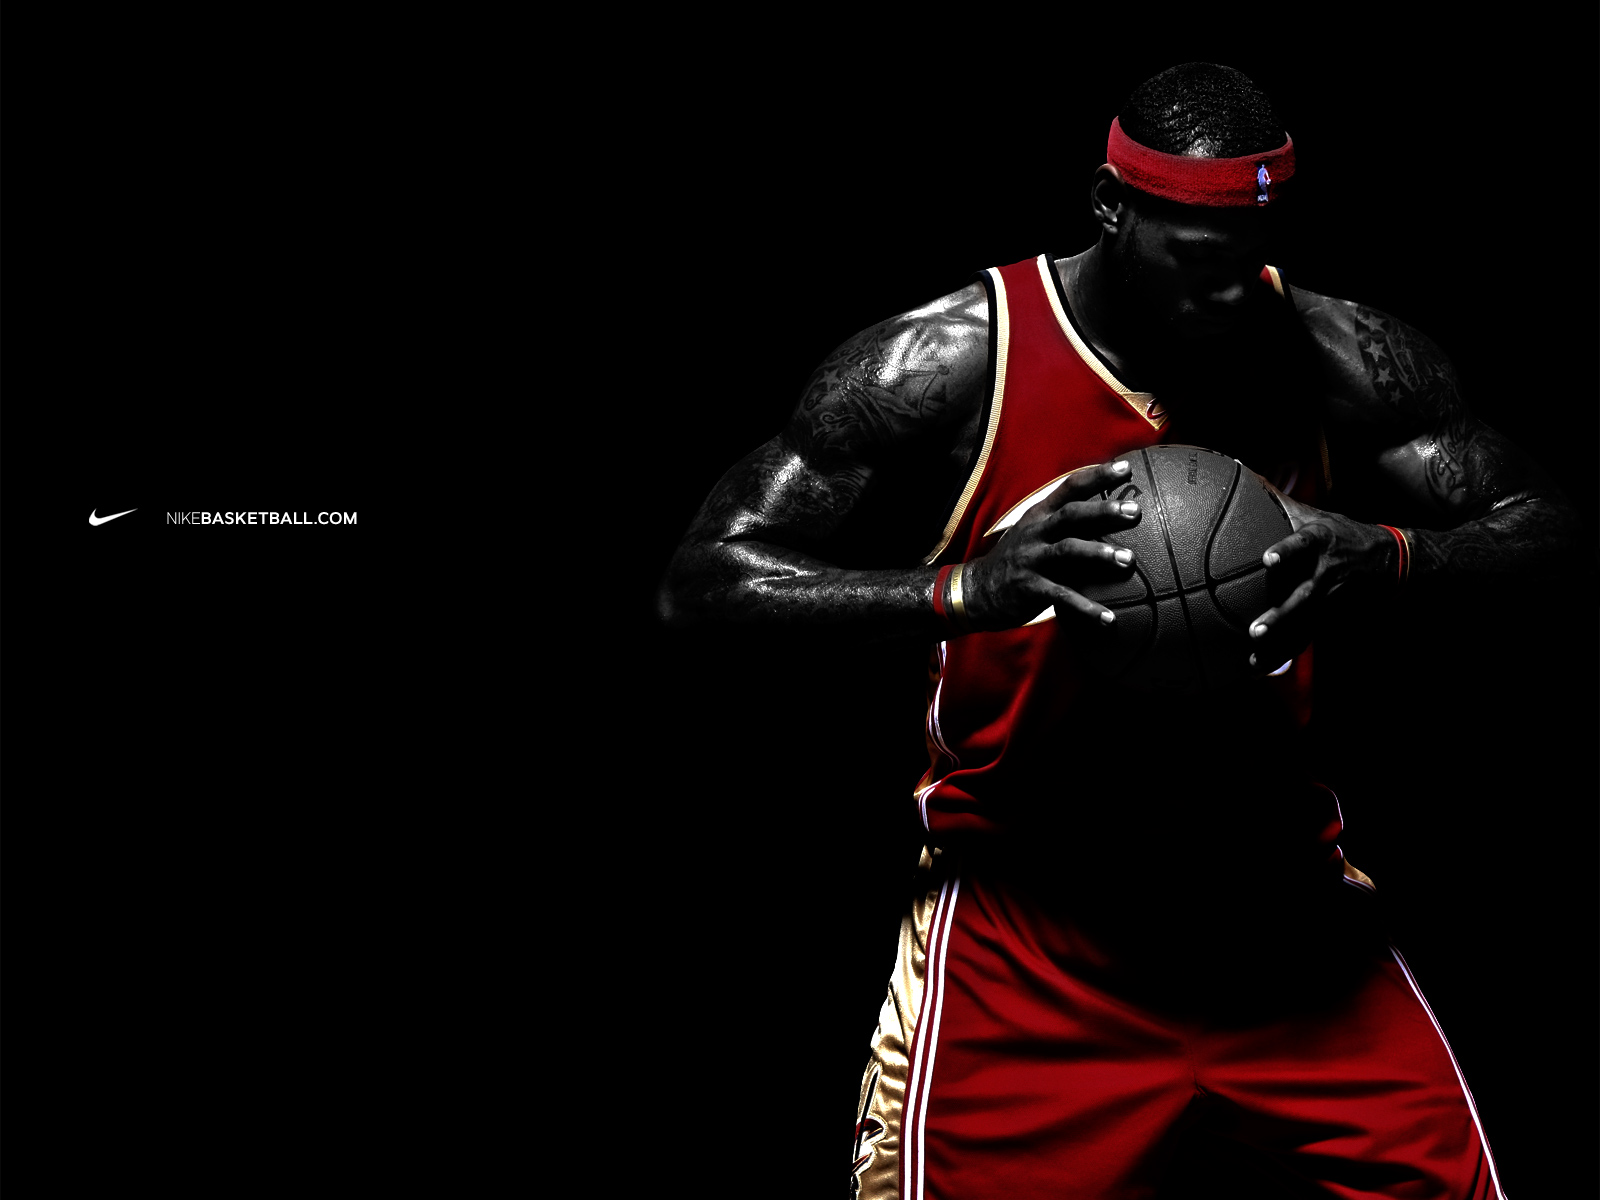 Jordan Shoe Backgrounds